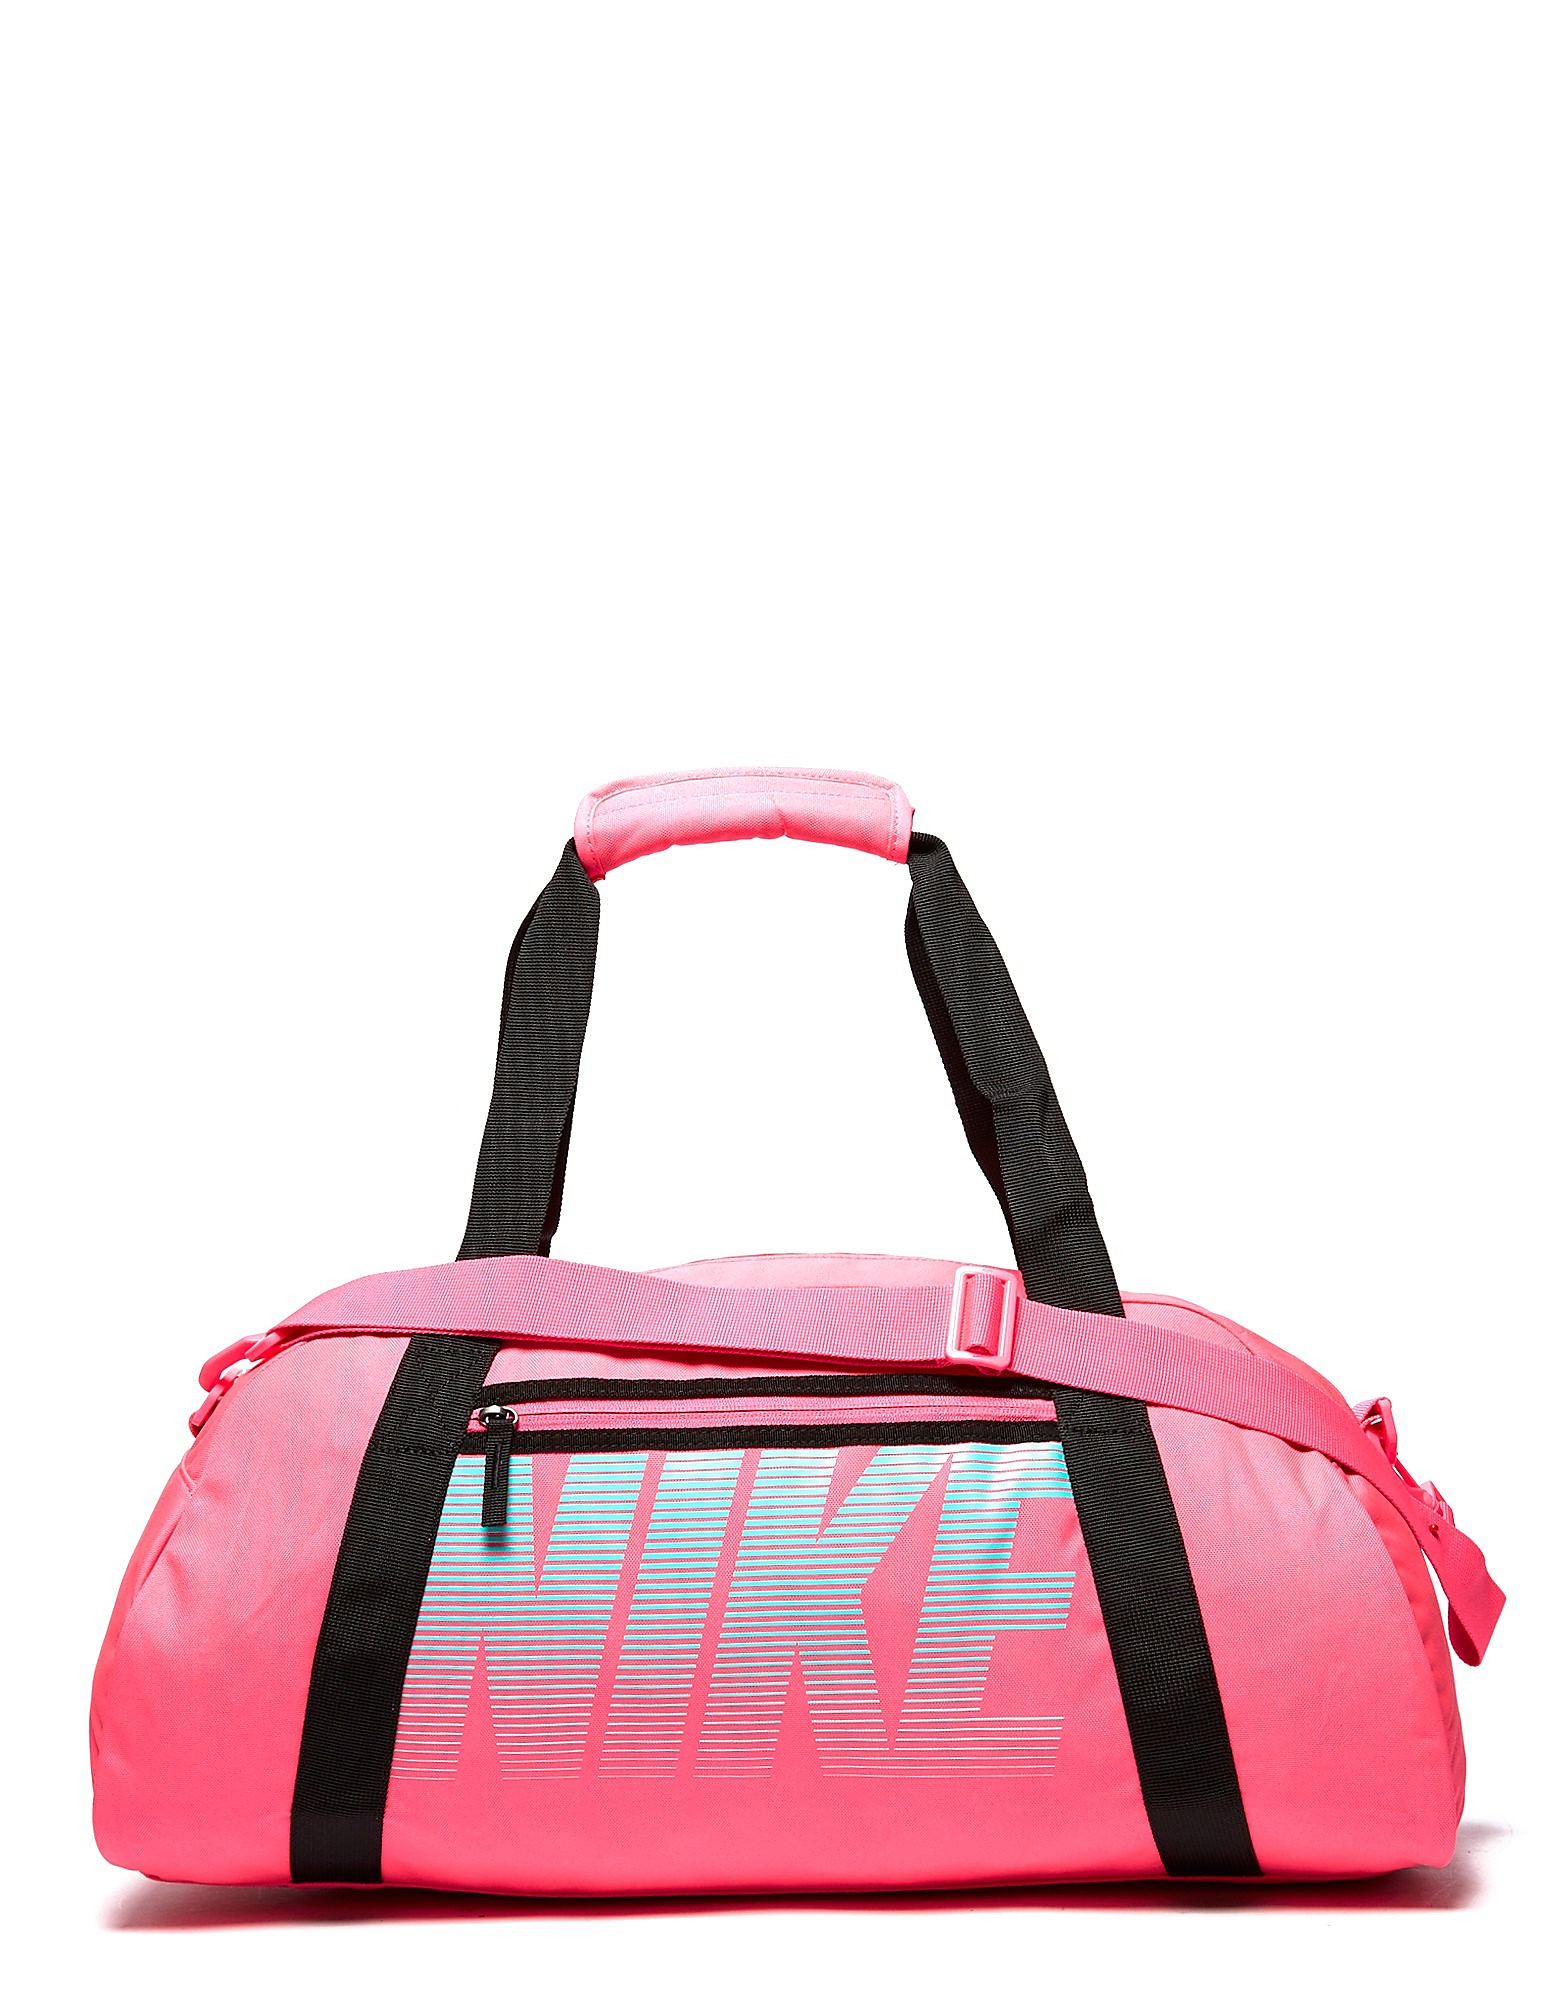 f76cae9cd38 Nike Gym Club Training Duffel Bag - Pink  Green - Womens - Sports ...